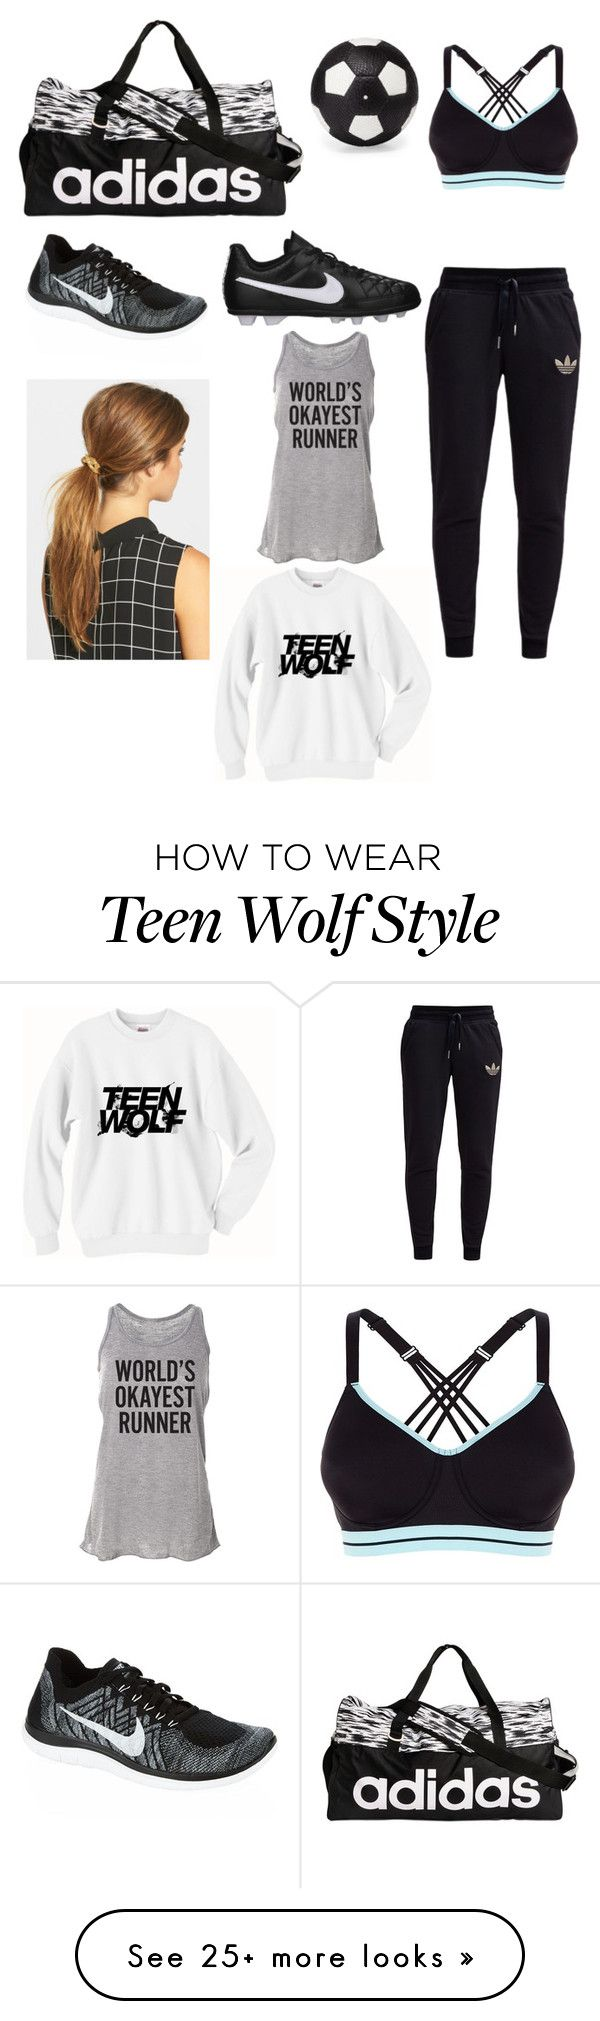 """""""Soccer prps tomorrow"""" by haleyngarcia on Polyvore featuring adidas, NIKE, Ficcare, adidas Originals and Elisabeth Weinstock"""